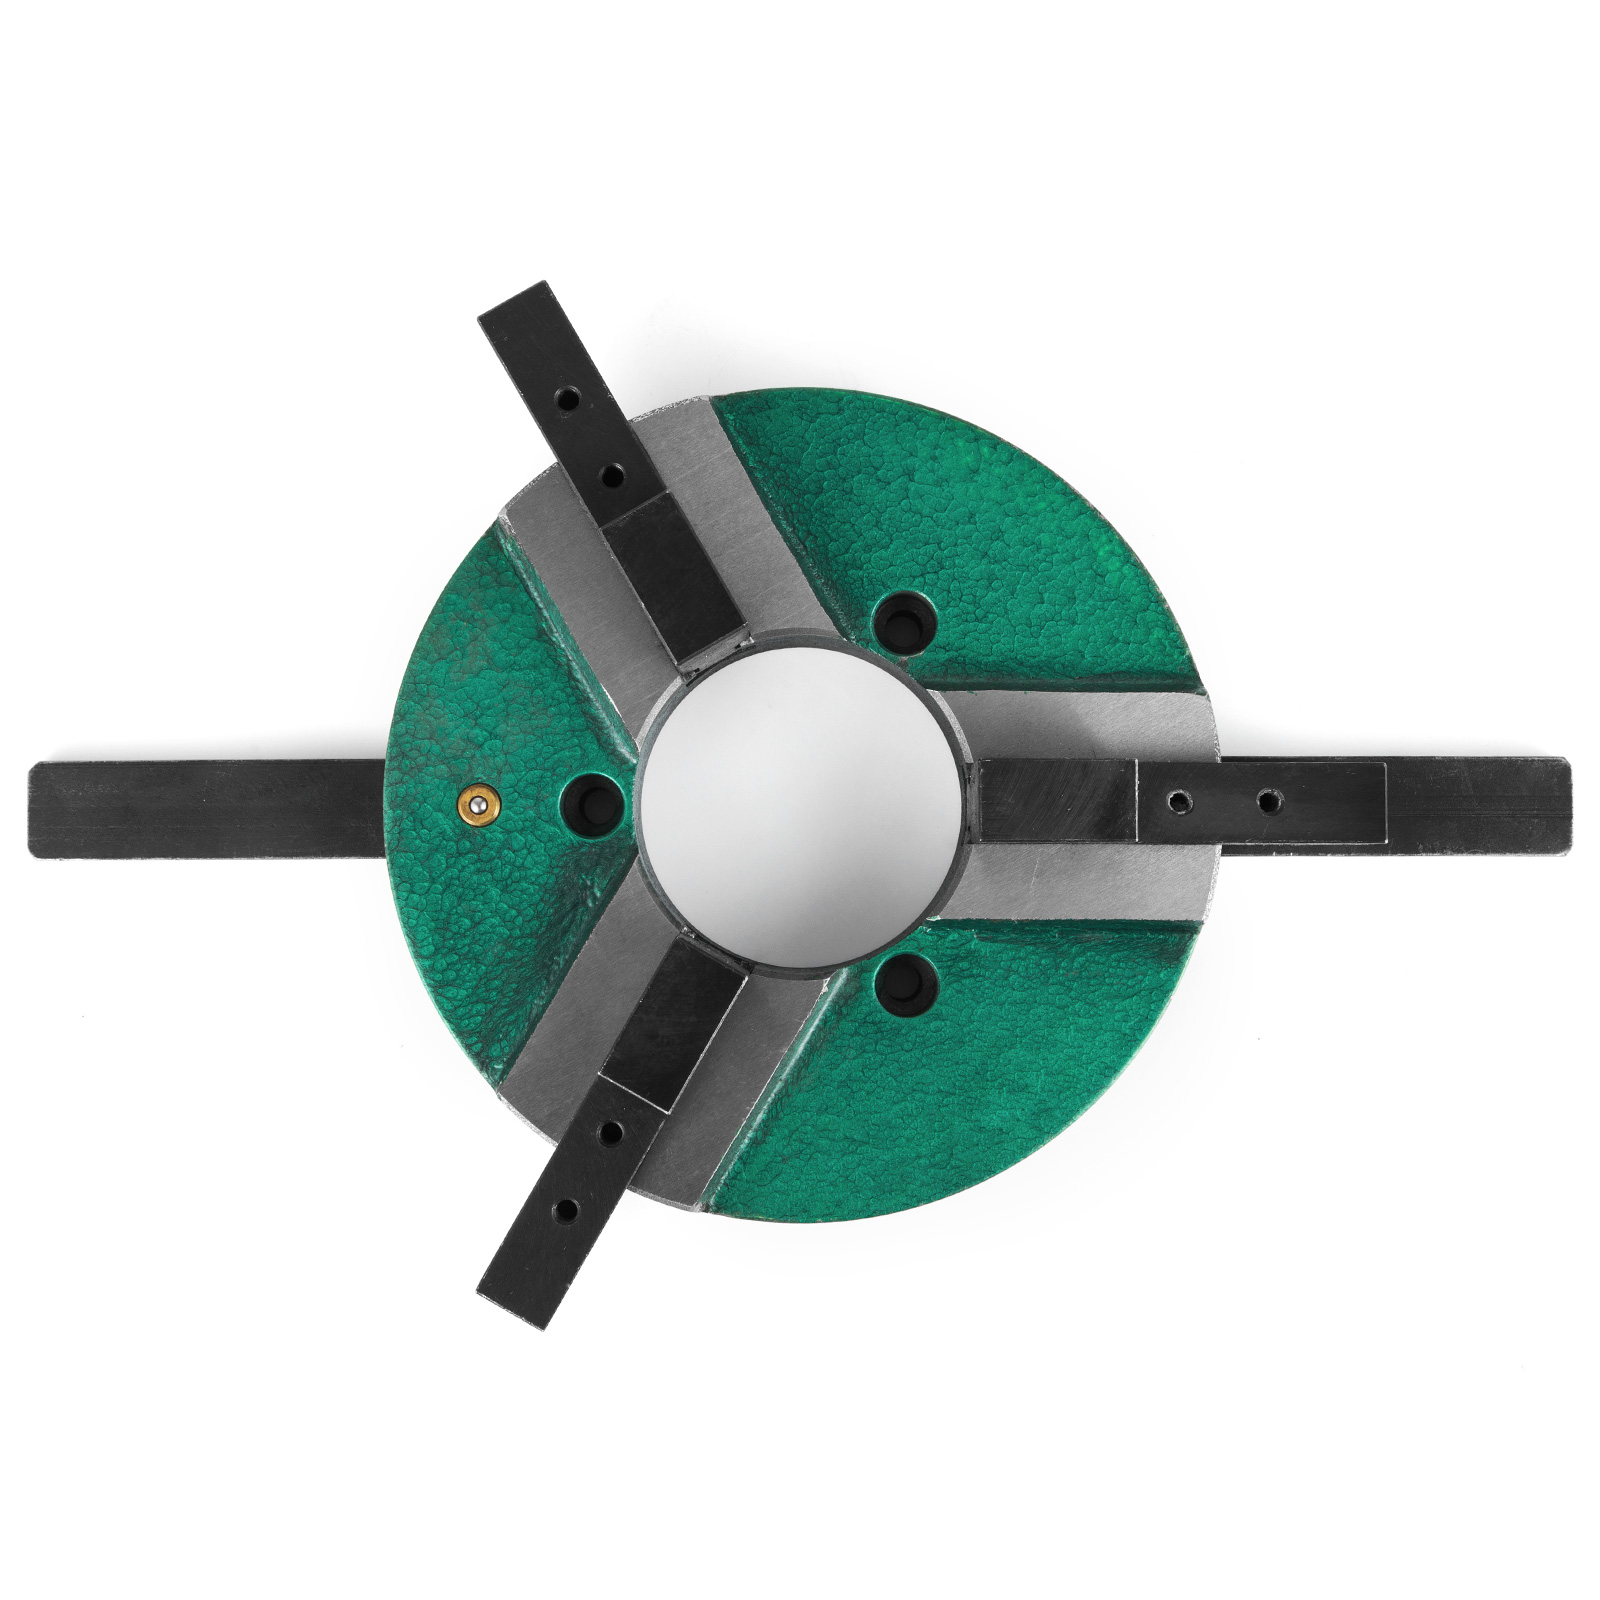 3-Jaw-Table-Chuck-Reversible-WP-200-WP-300-Clamping-Self-Centering-Welding thumbnail 19